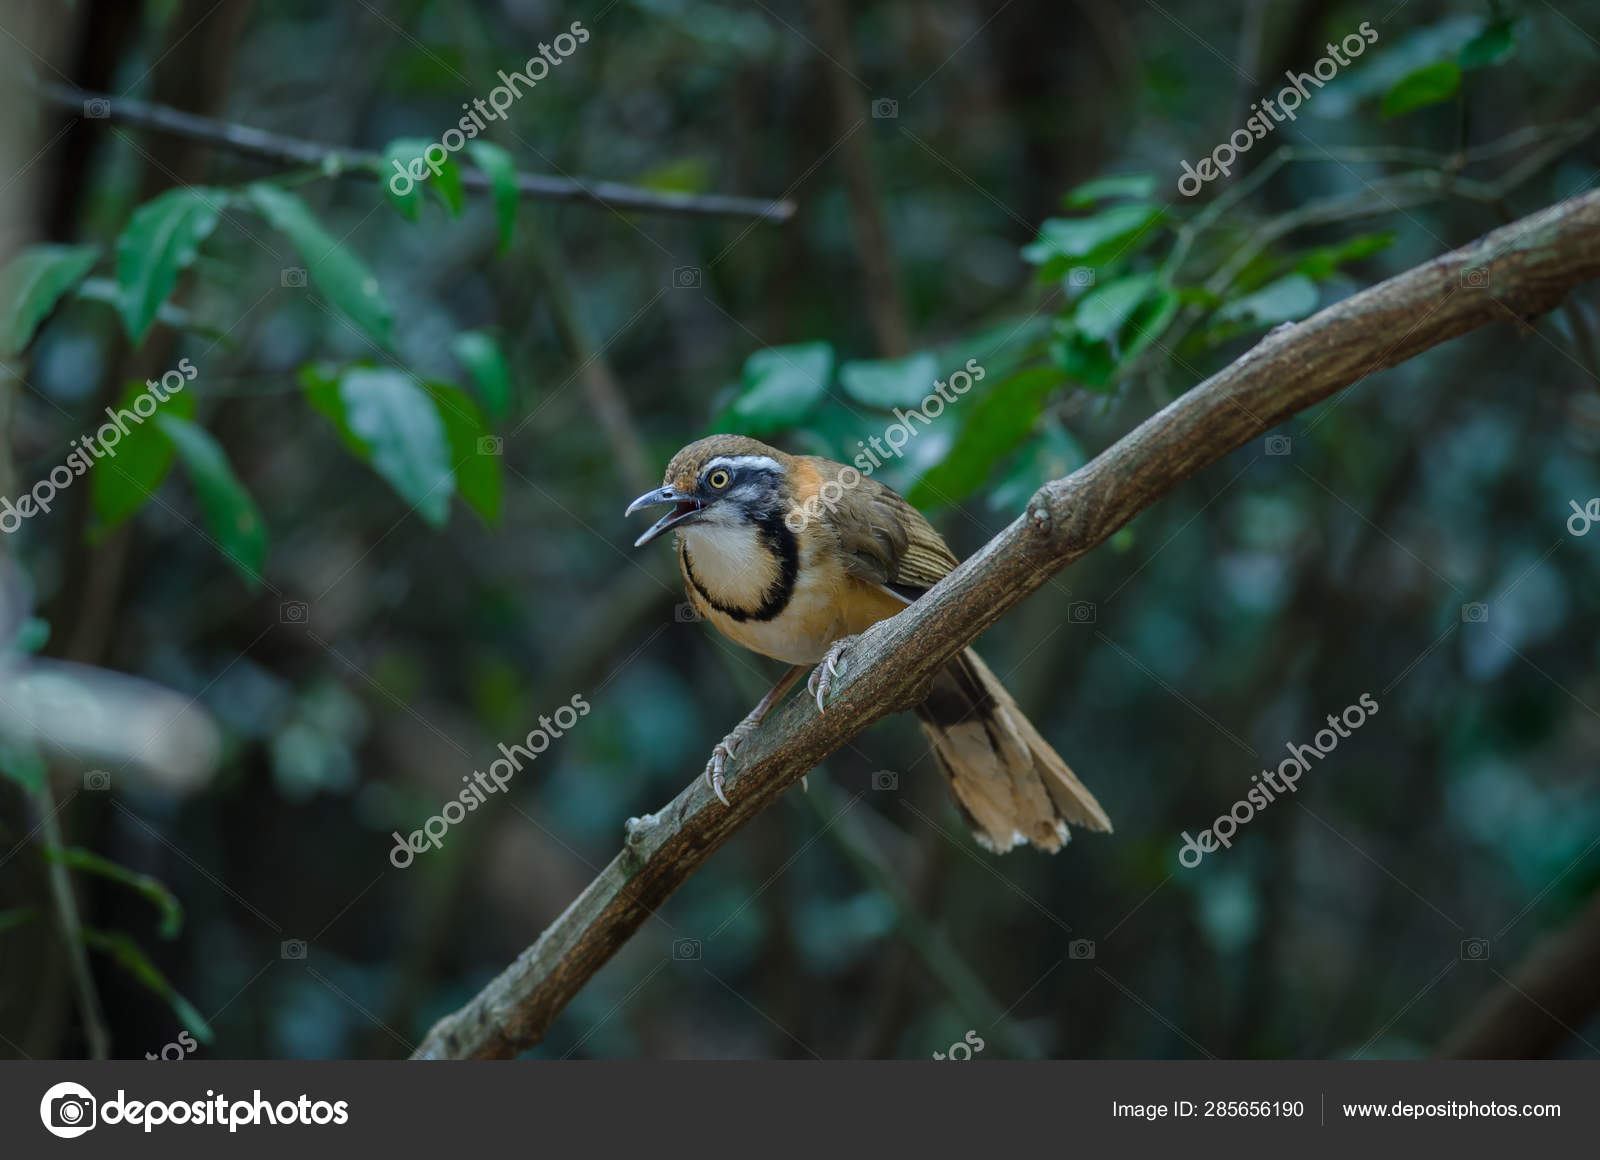 Lesser Necklaced Laughingthrush Perching On Branch In Nature Stock Photo C Sirichai2514 285656190